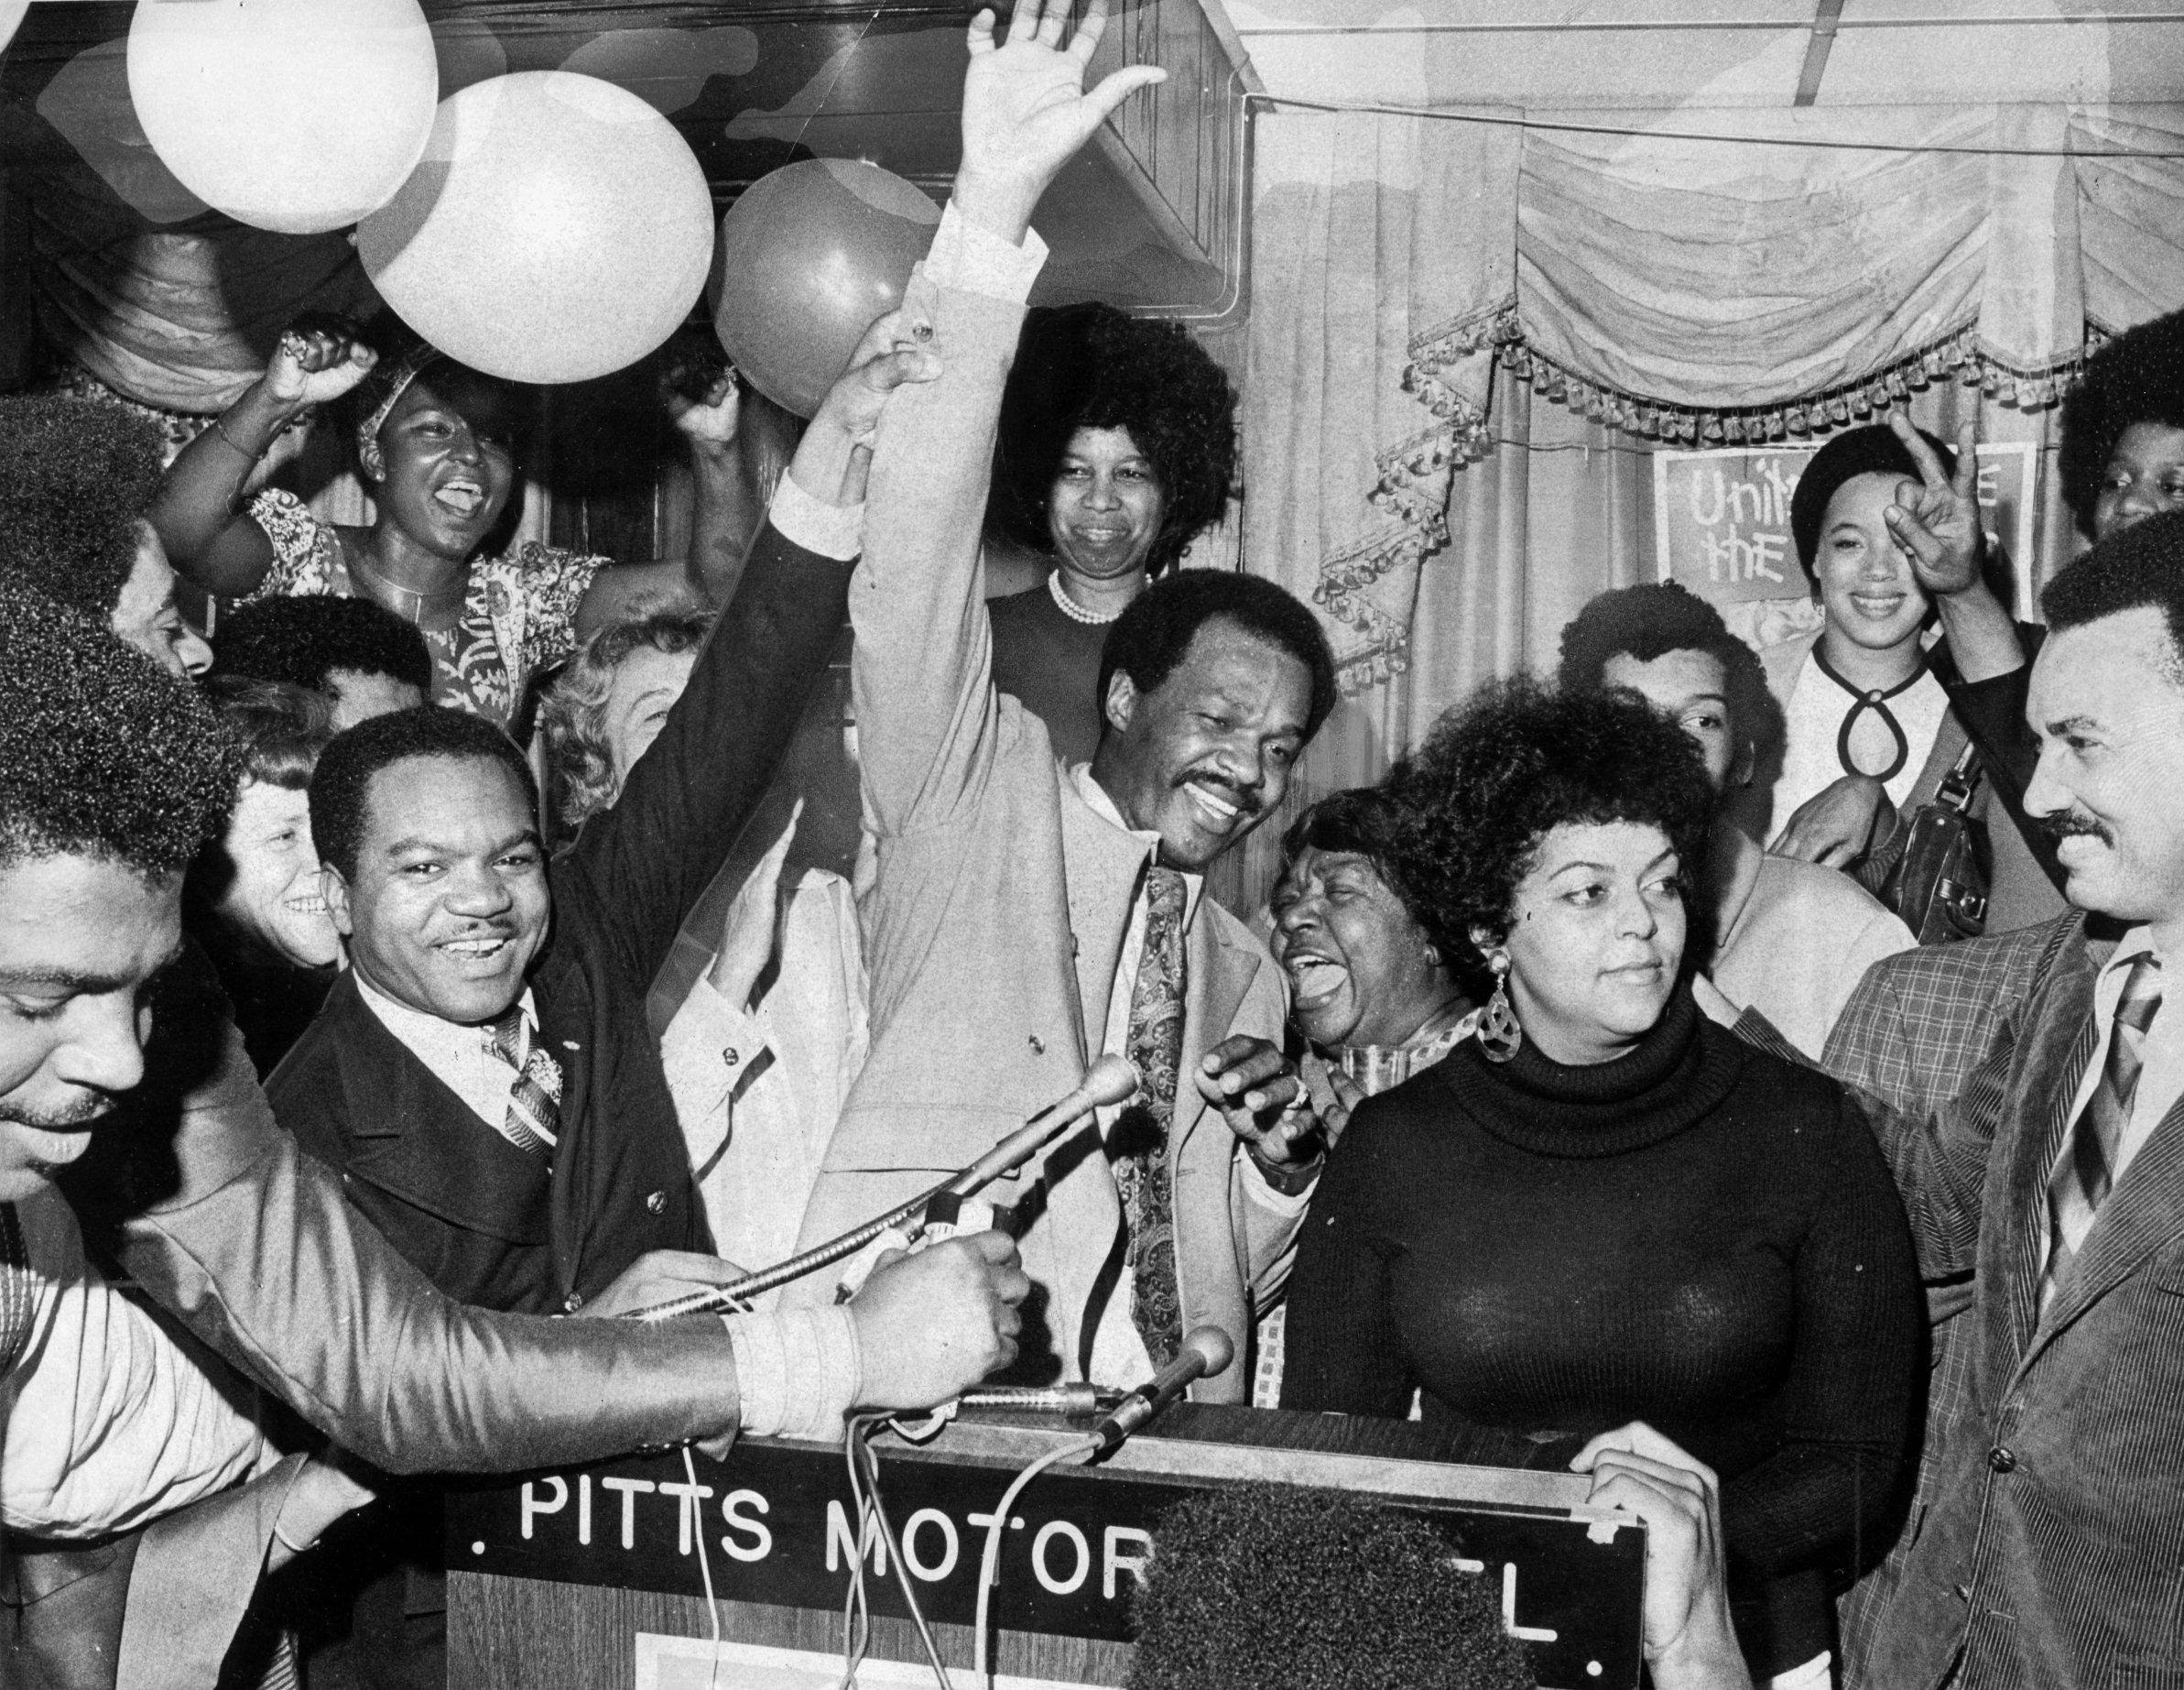 Barry Elected to D.C. School Board - Pictured here with D.C. Delegate Walter Fauntroy, Barry is celebrating winning a seat on the city's school board. (Photo: Ellsworth Davis/The Washington Post)